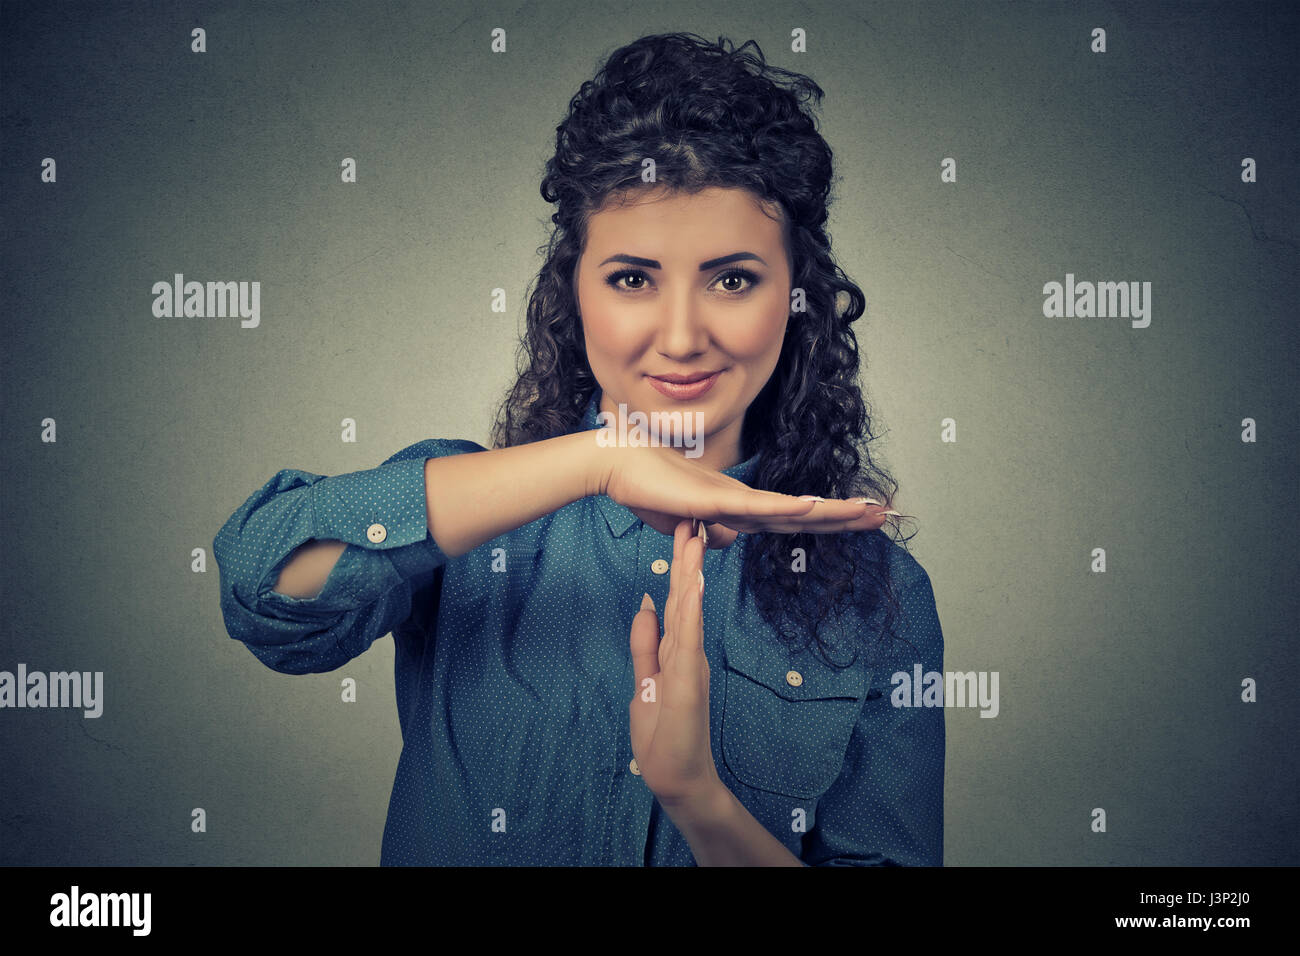 Closeup portrait, young, happy, smiling woman showing time out gesture with hands isolated on gray wall background. - Stock Image